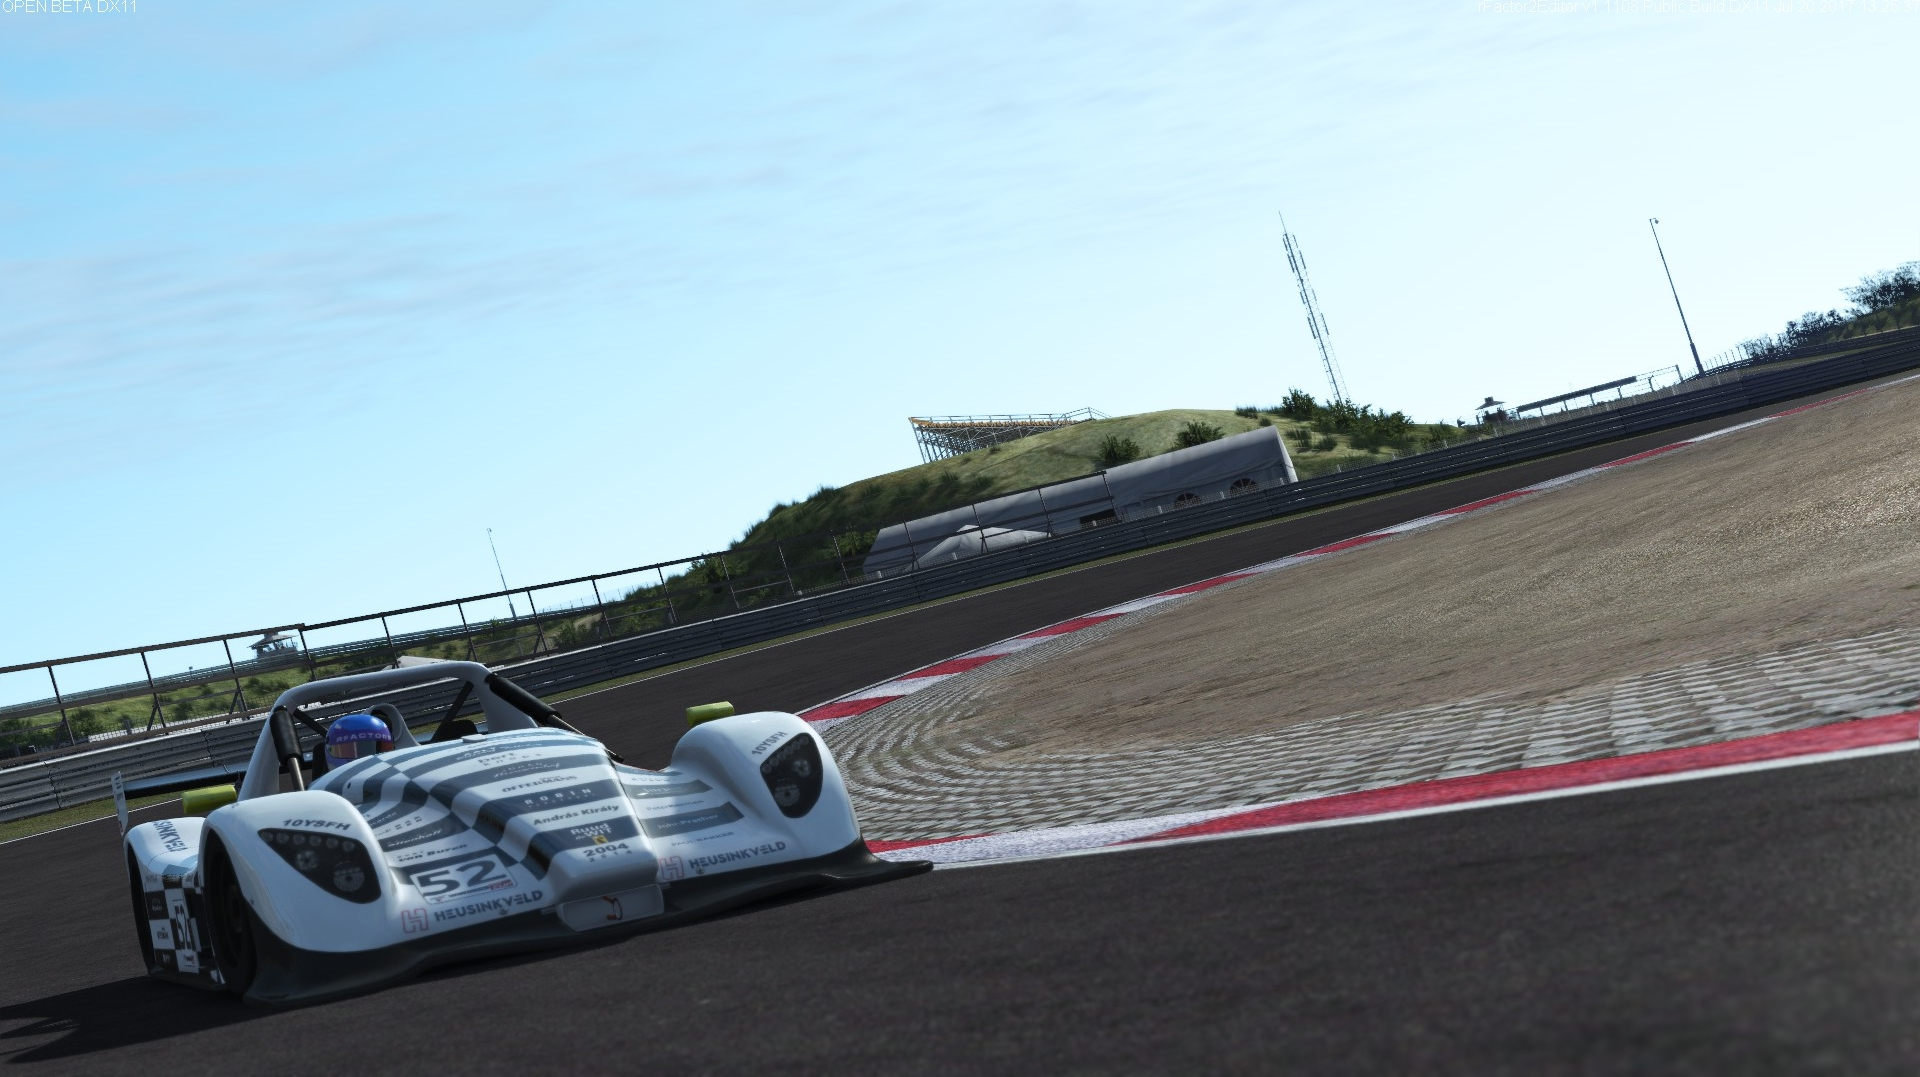 rfactor2] rFactor2 [Updates] - Page 4 - rFactor 2 - PC Gaming Forum